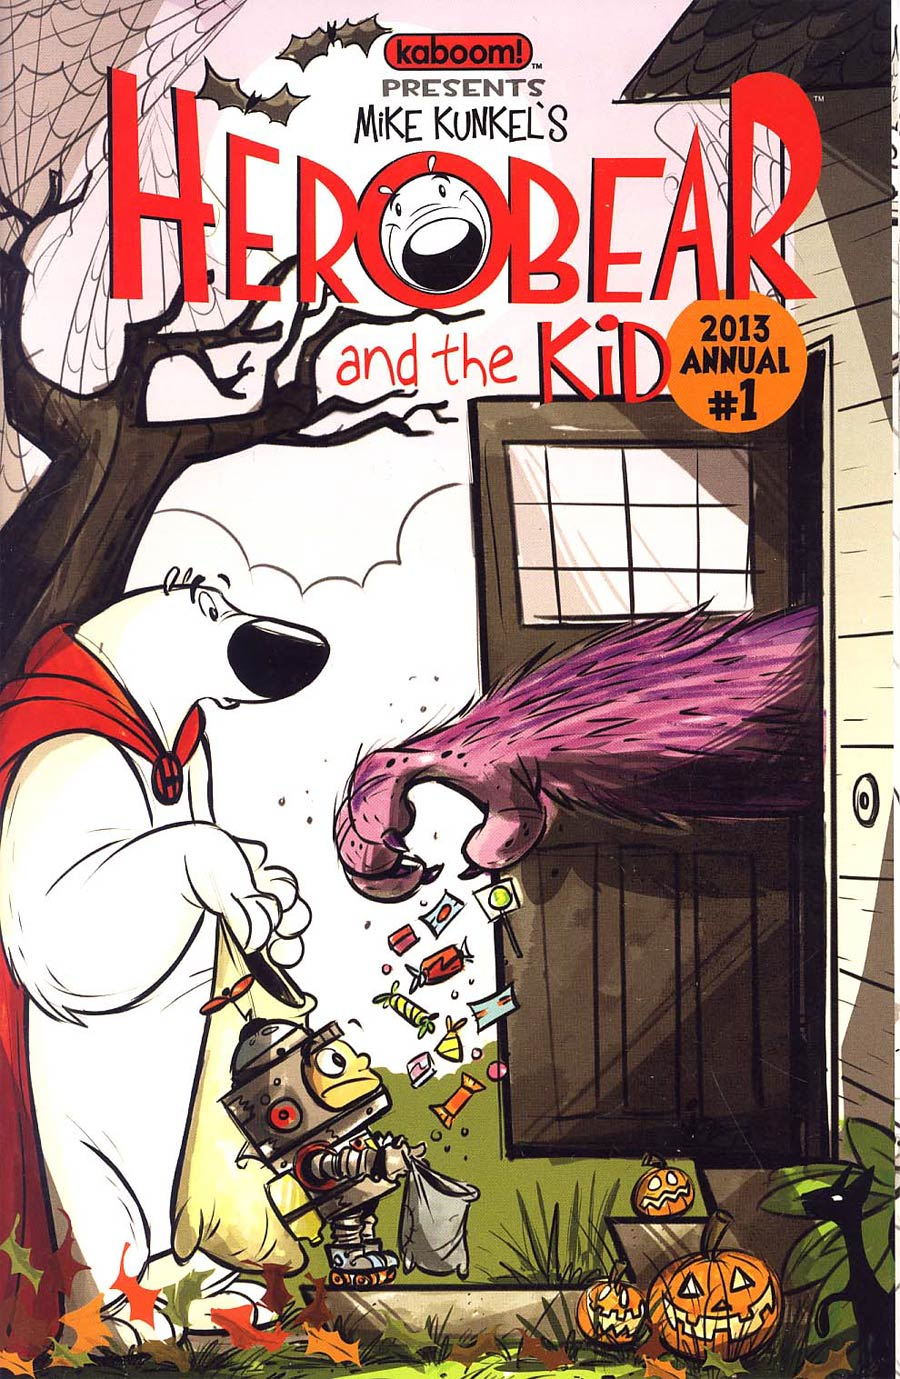 Herobear And The Kid Annual #1 2013 Recall Version